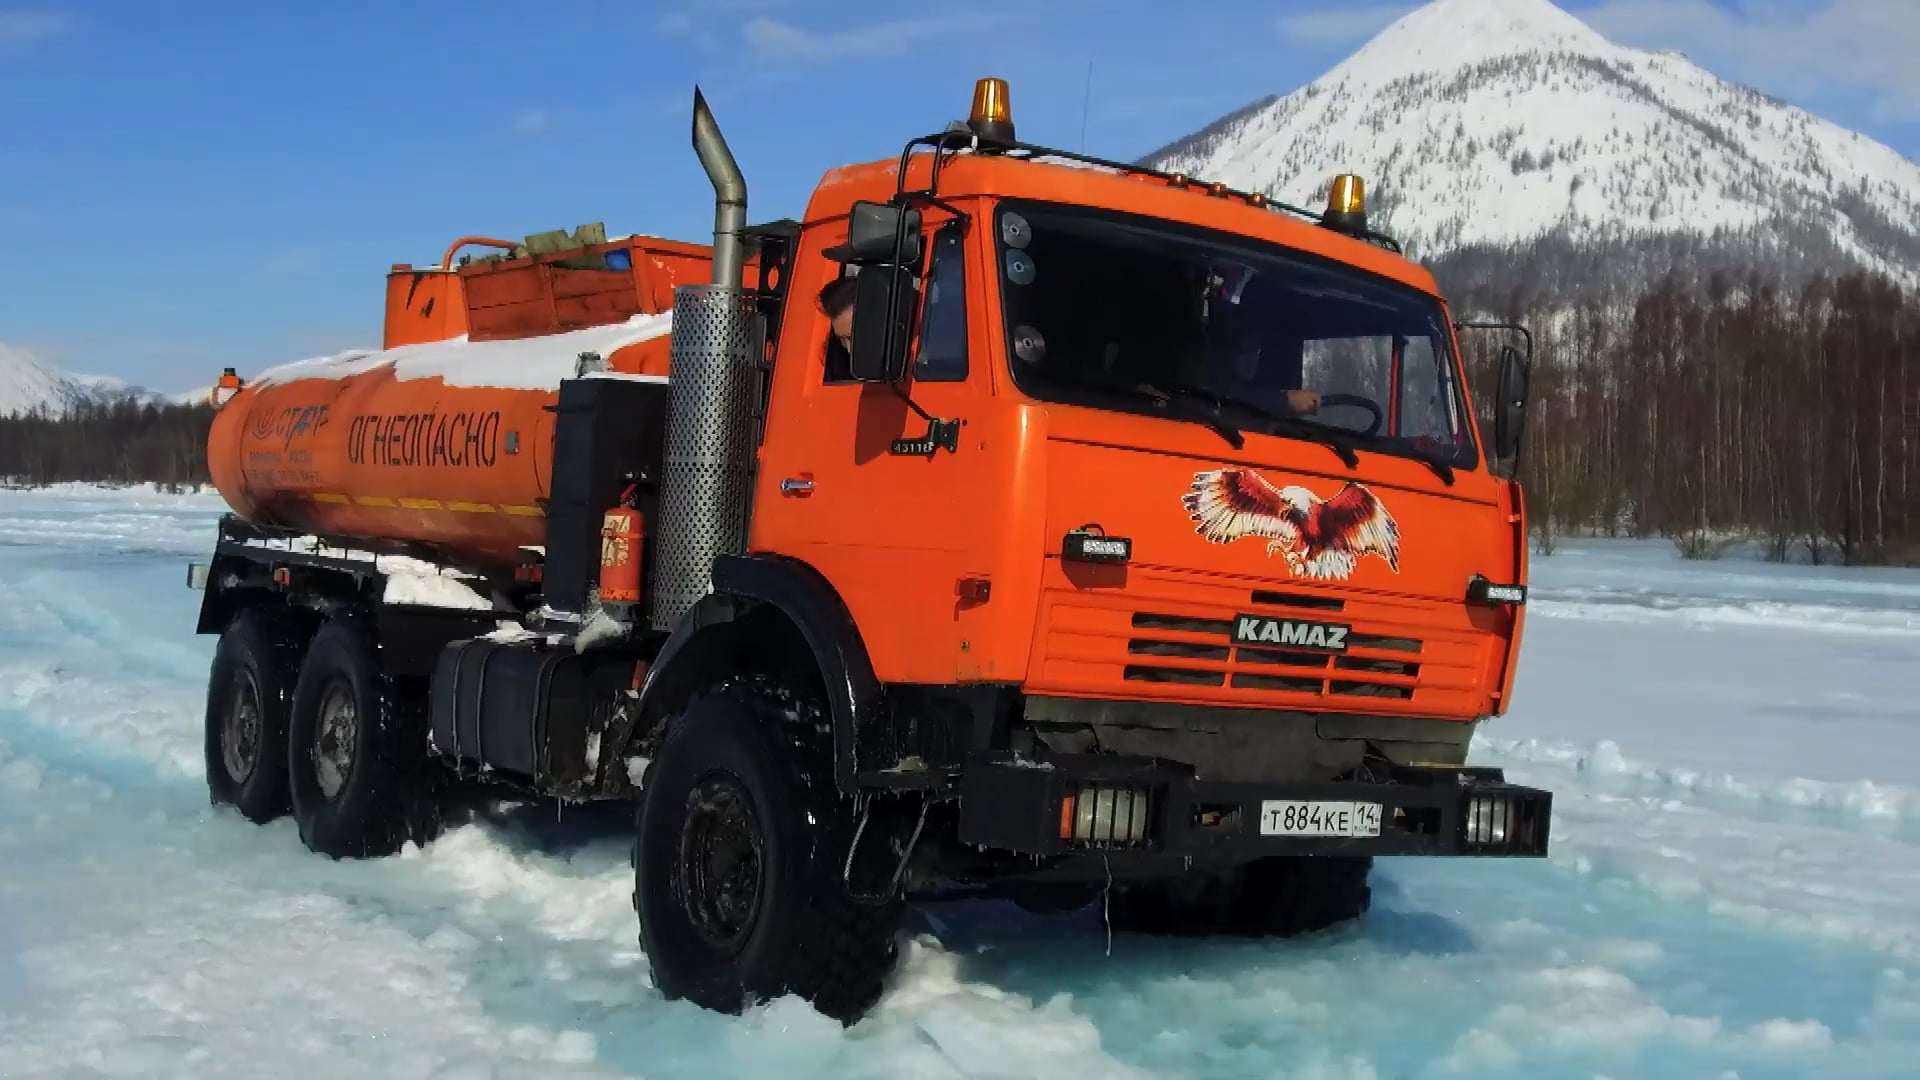 TOUGH TRUCKS is an adventure travel series featuring epic truck journeys in some of the world's most spectacular off-the-beaten-track locations.